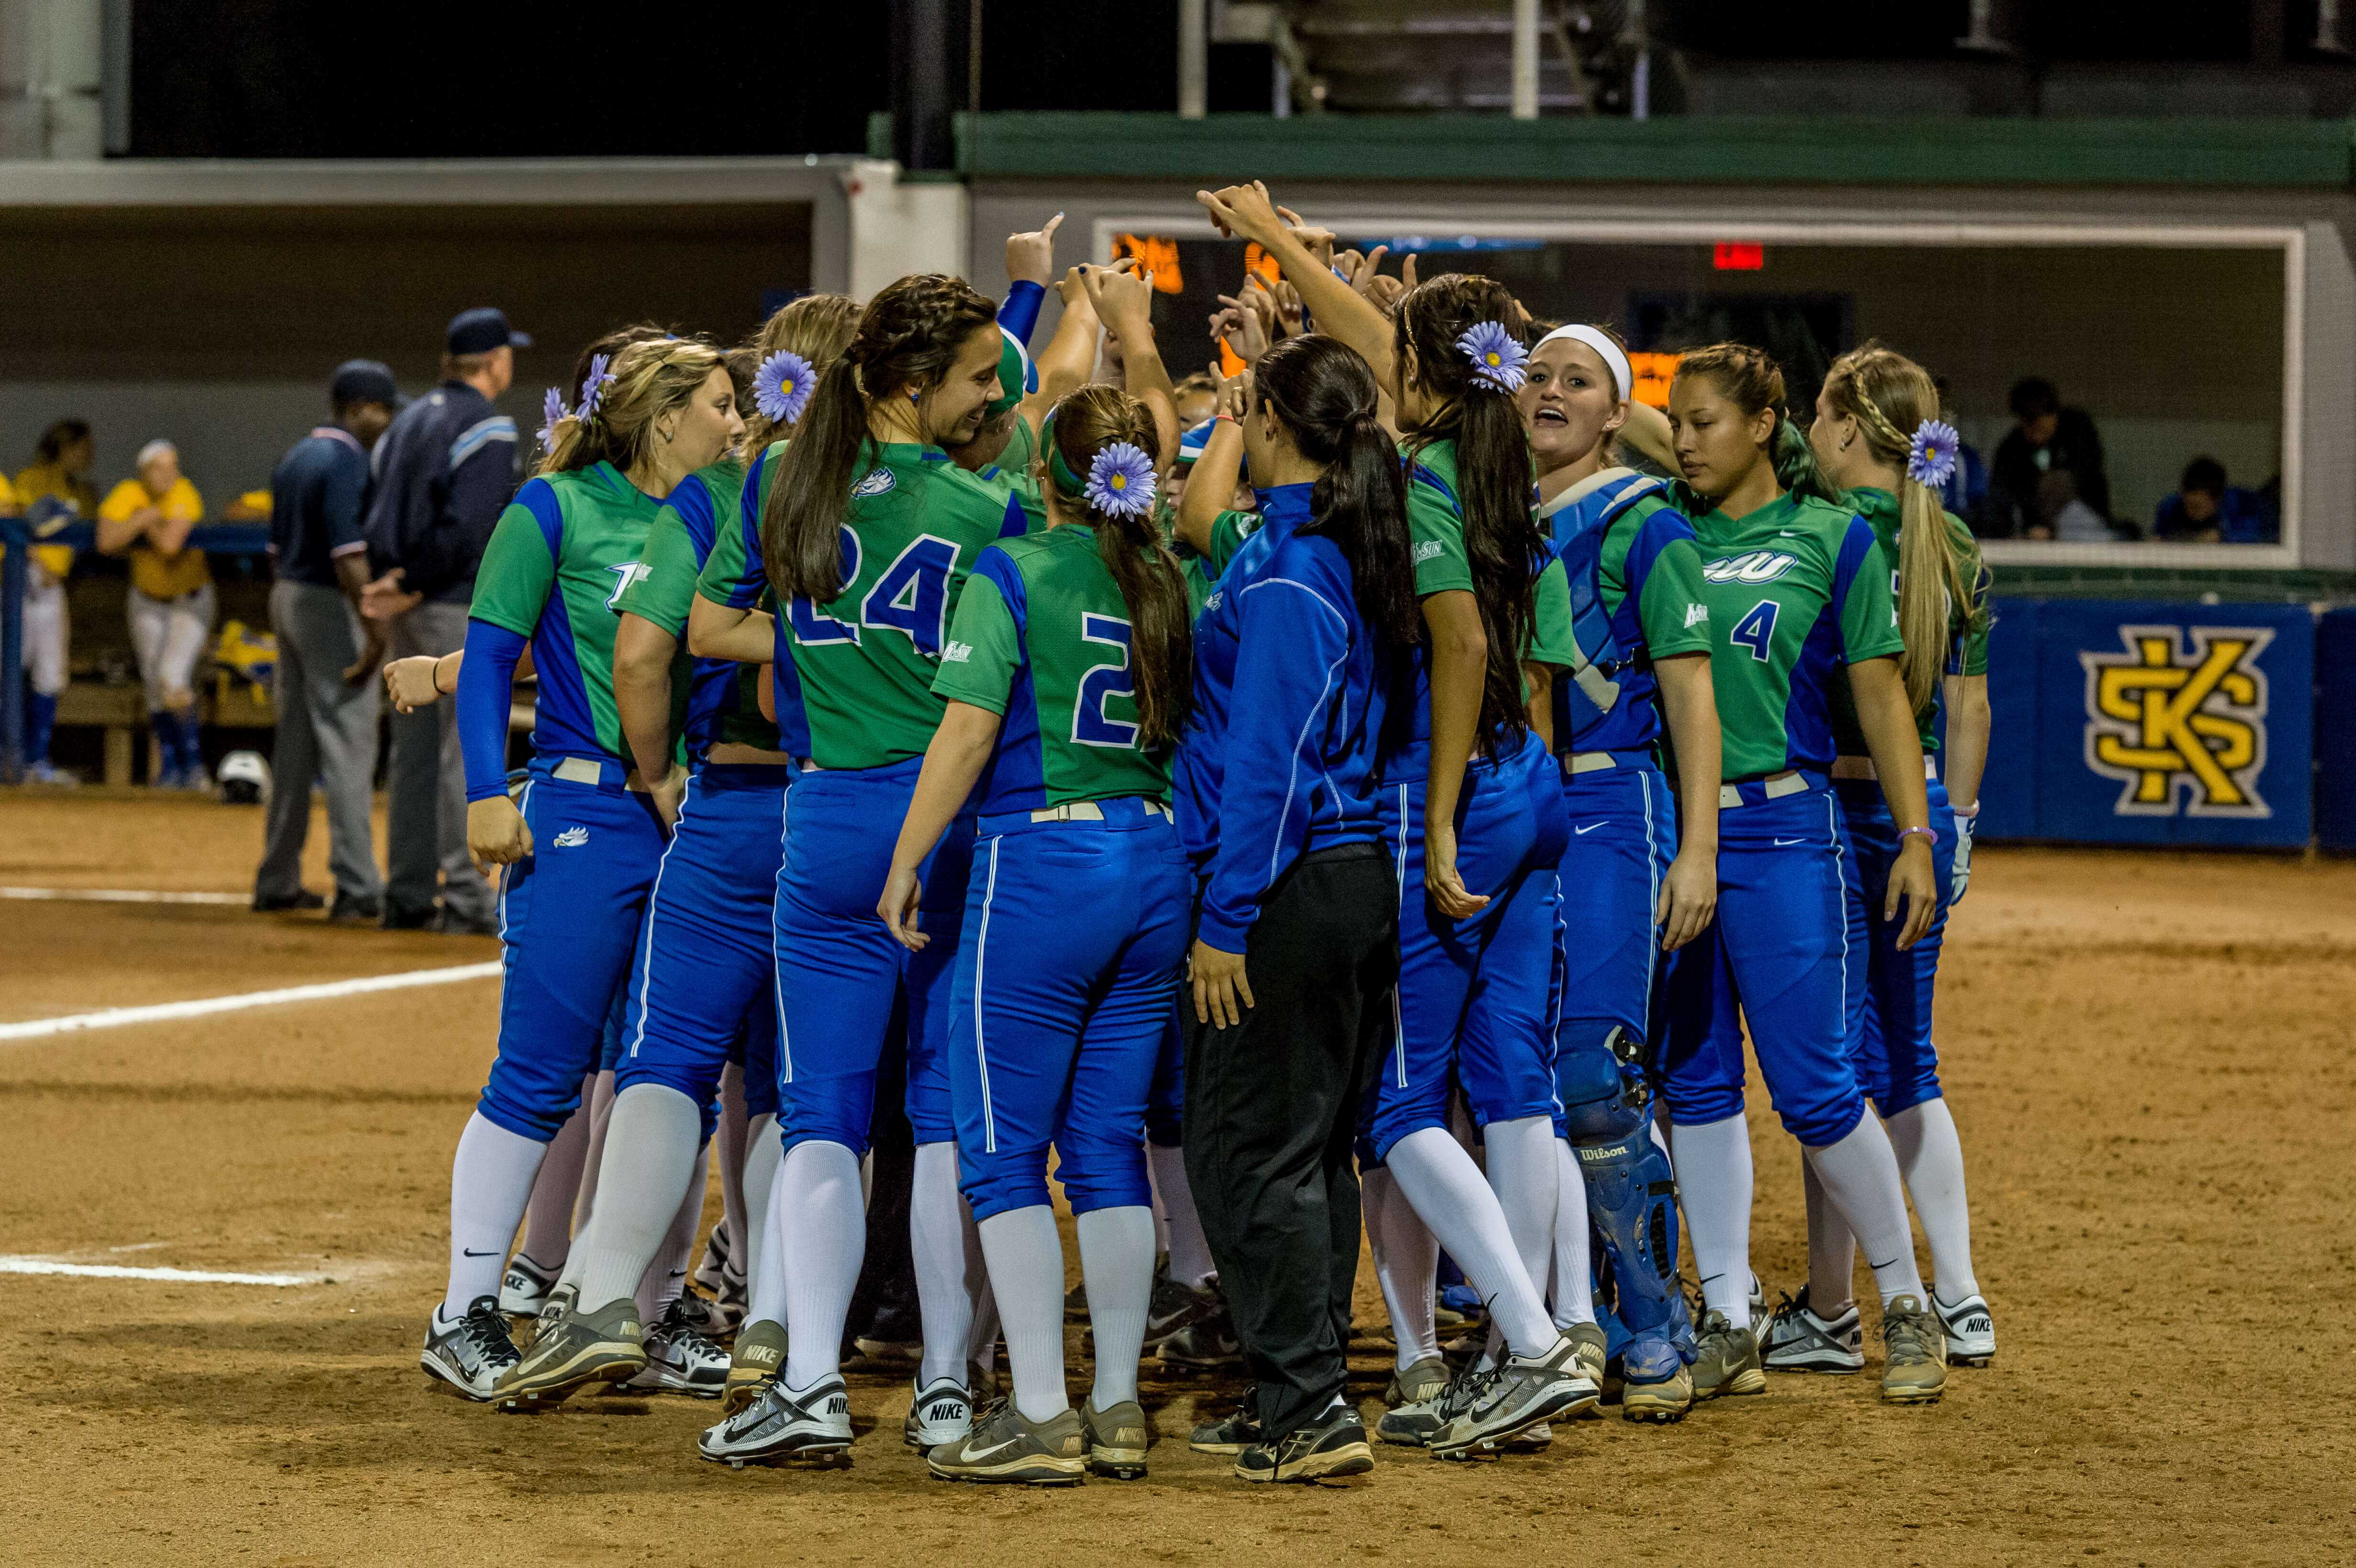 Softball: FGCU starts strong against Lipscomb but struggles to finish